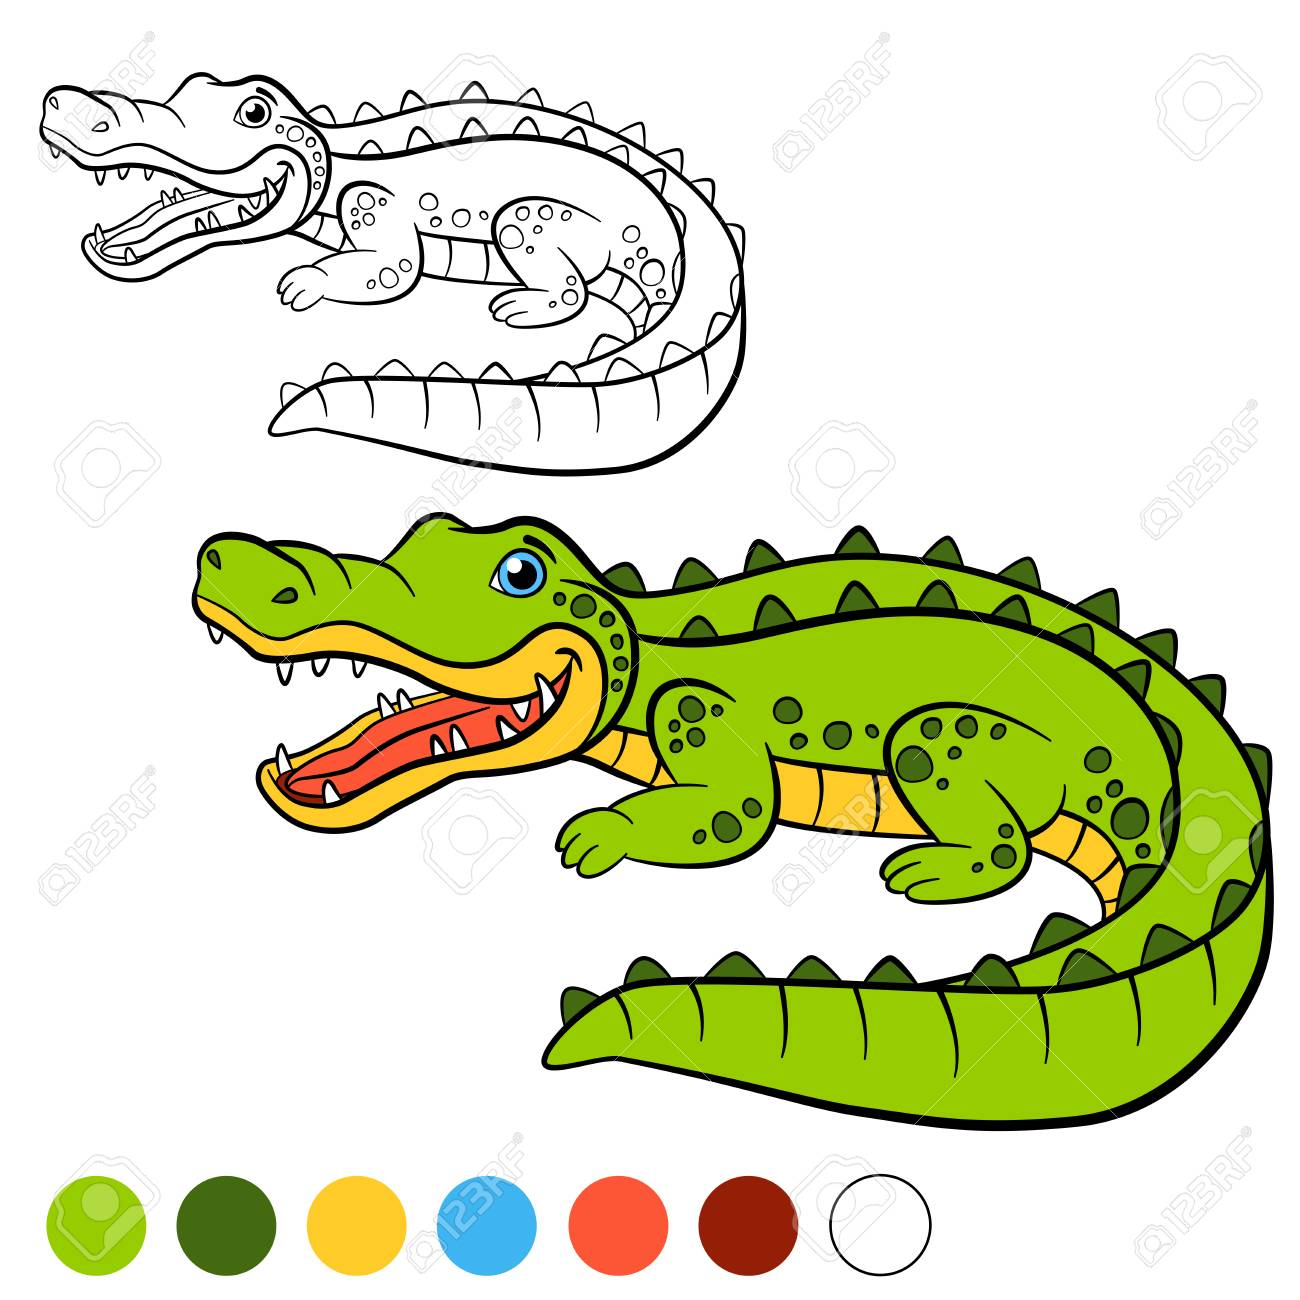 Coloring Page. Color Me: Alligator. Little Cute Spotted Alligator ...